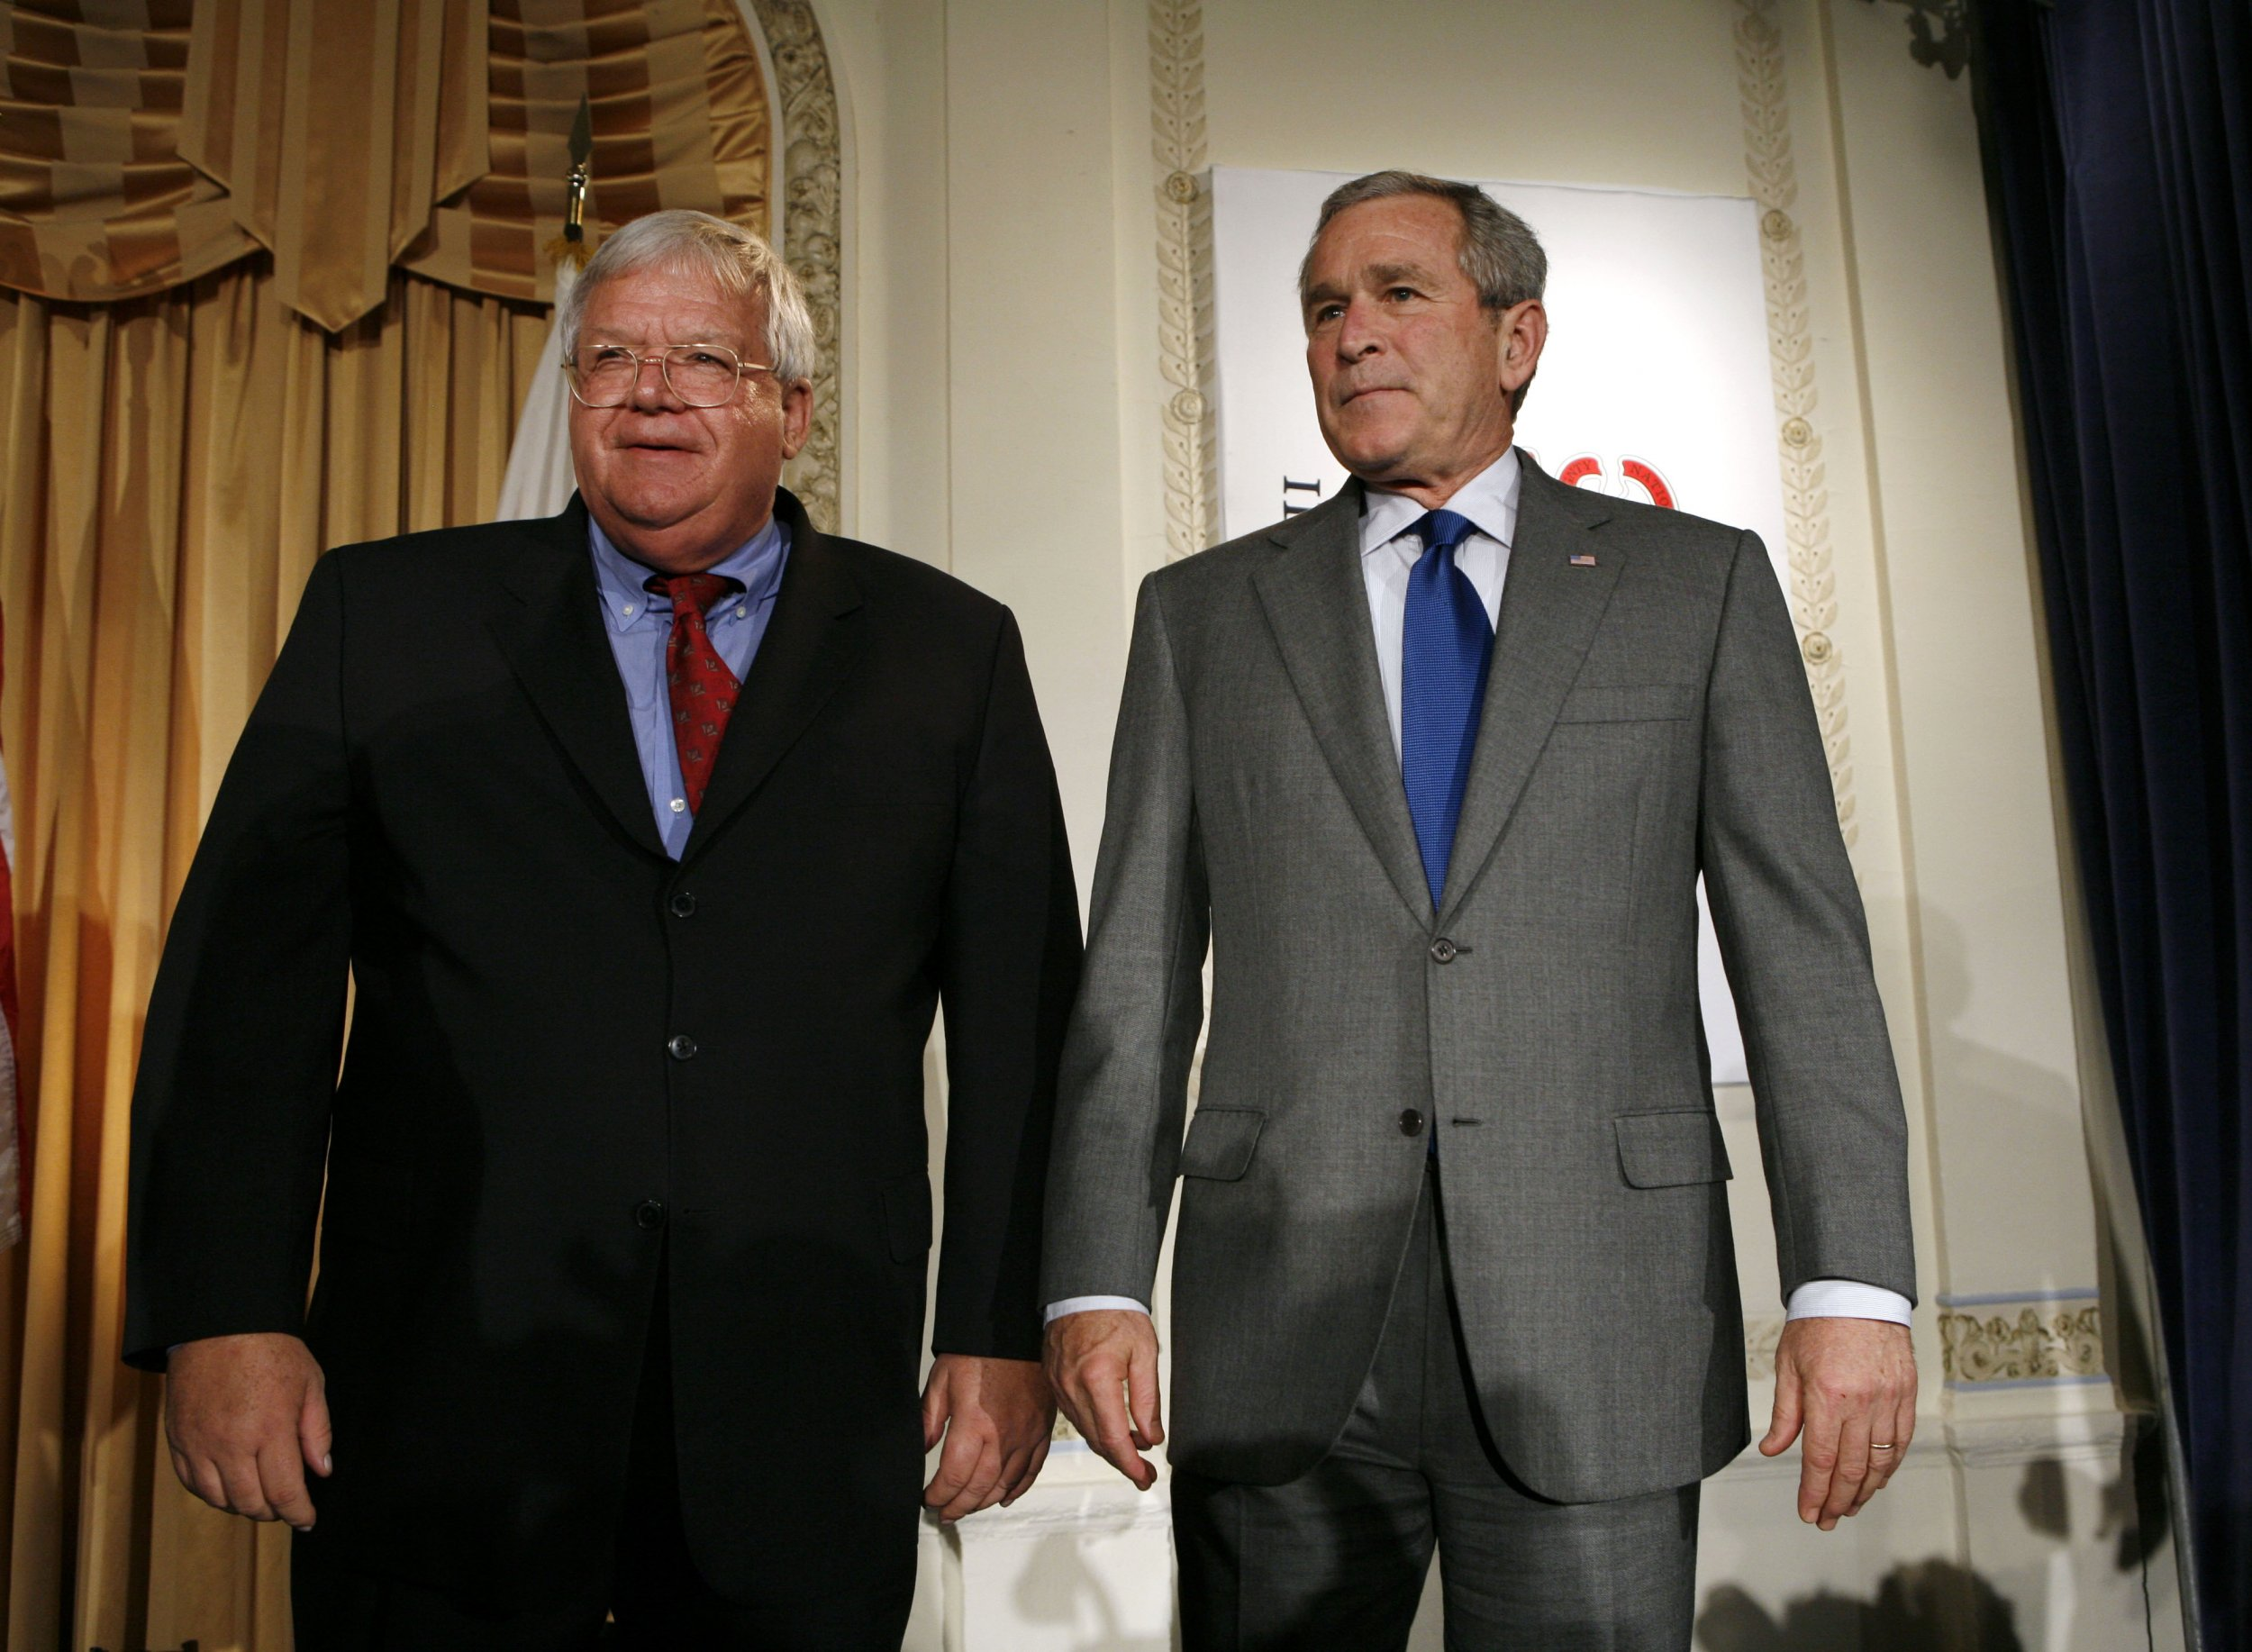 Former House Speaker Dennis Hastert explains what's wrong with Trump's Congress